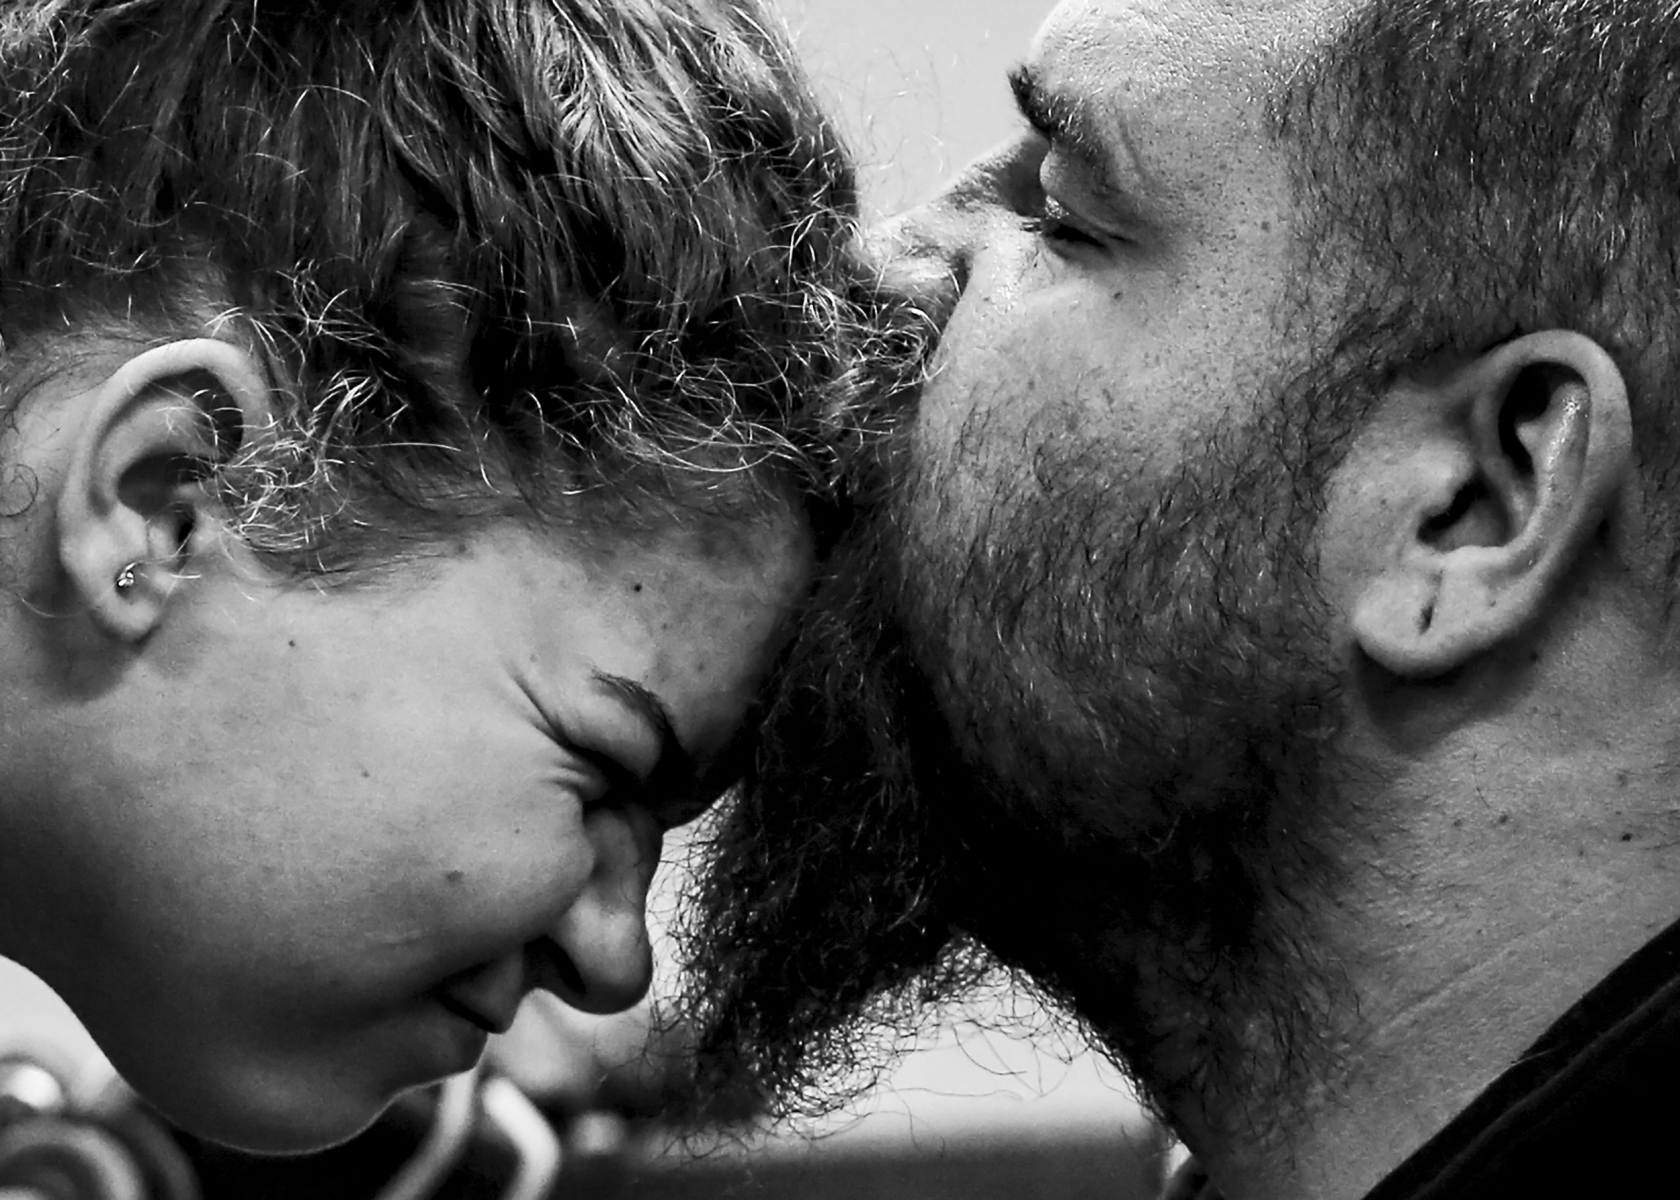 Nate kisses his daughter, Natalie, in the garage, Saturday, Jan. 18, 2019 in Muncie, Ind. Both Natalie and her mother, Ashley spent Saturday in the garage with the boys. Demolition Derbies are a whole family affair. Rebecca Slezak/JOUR437